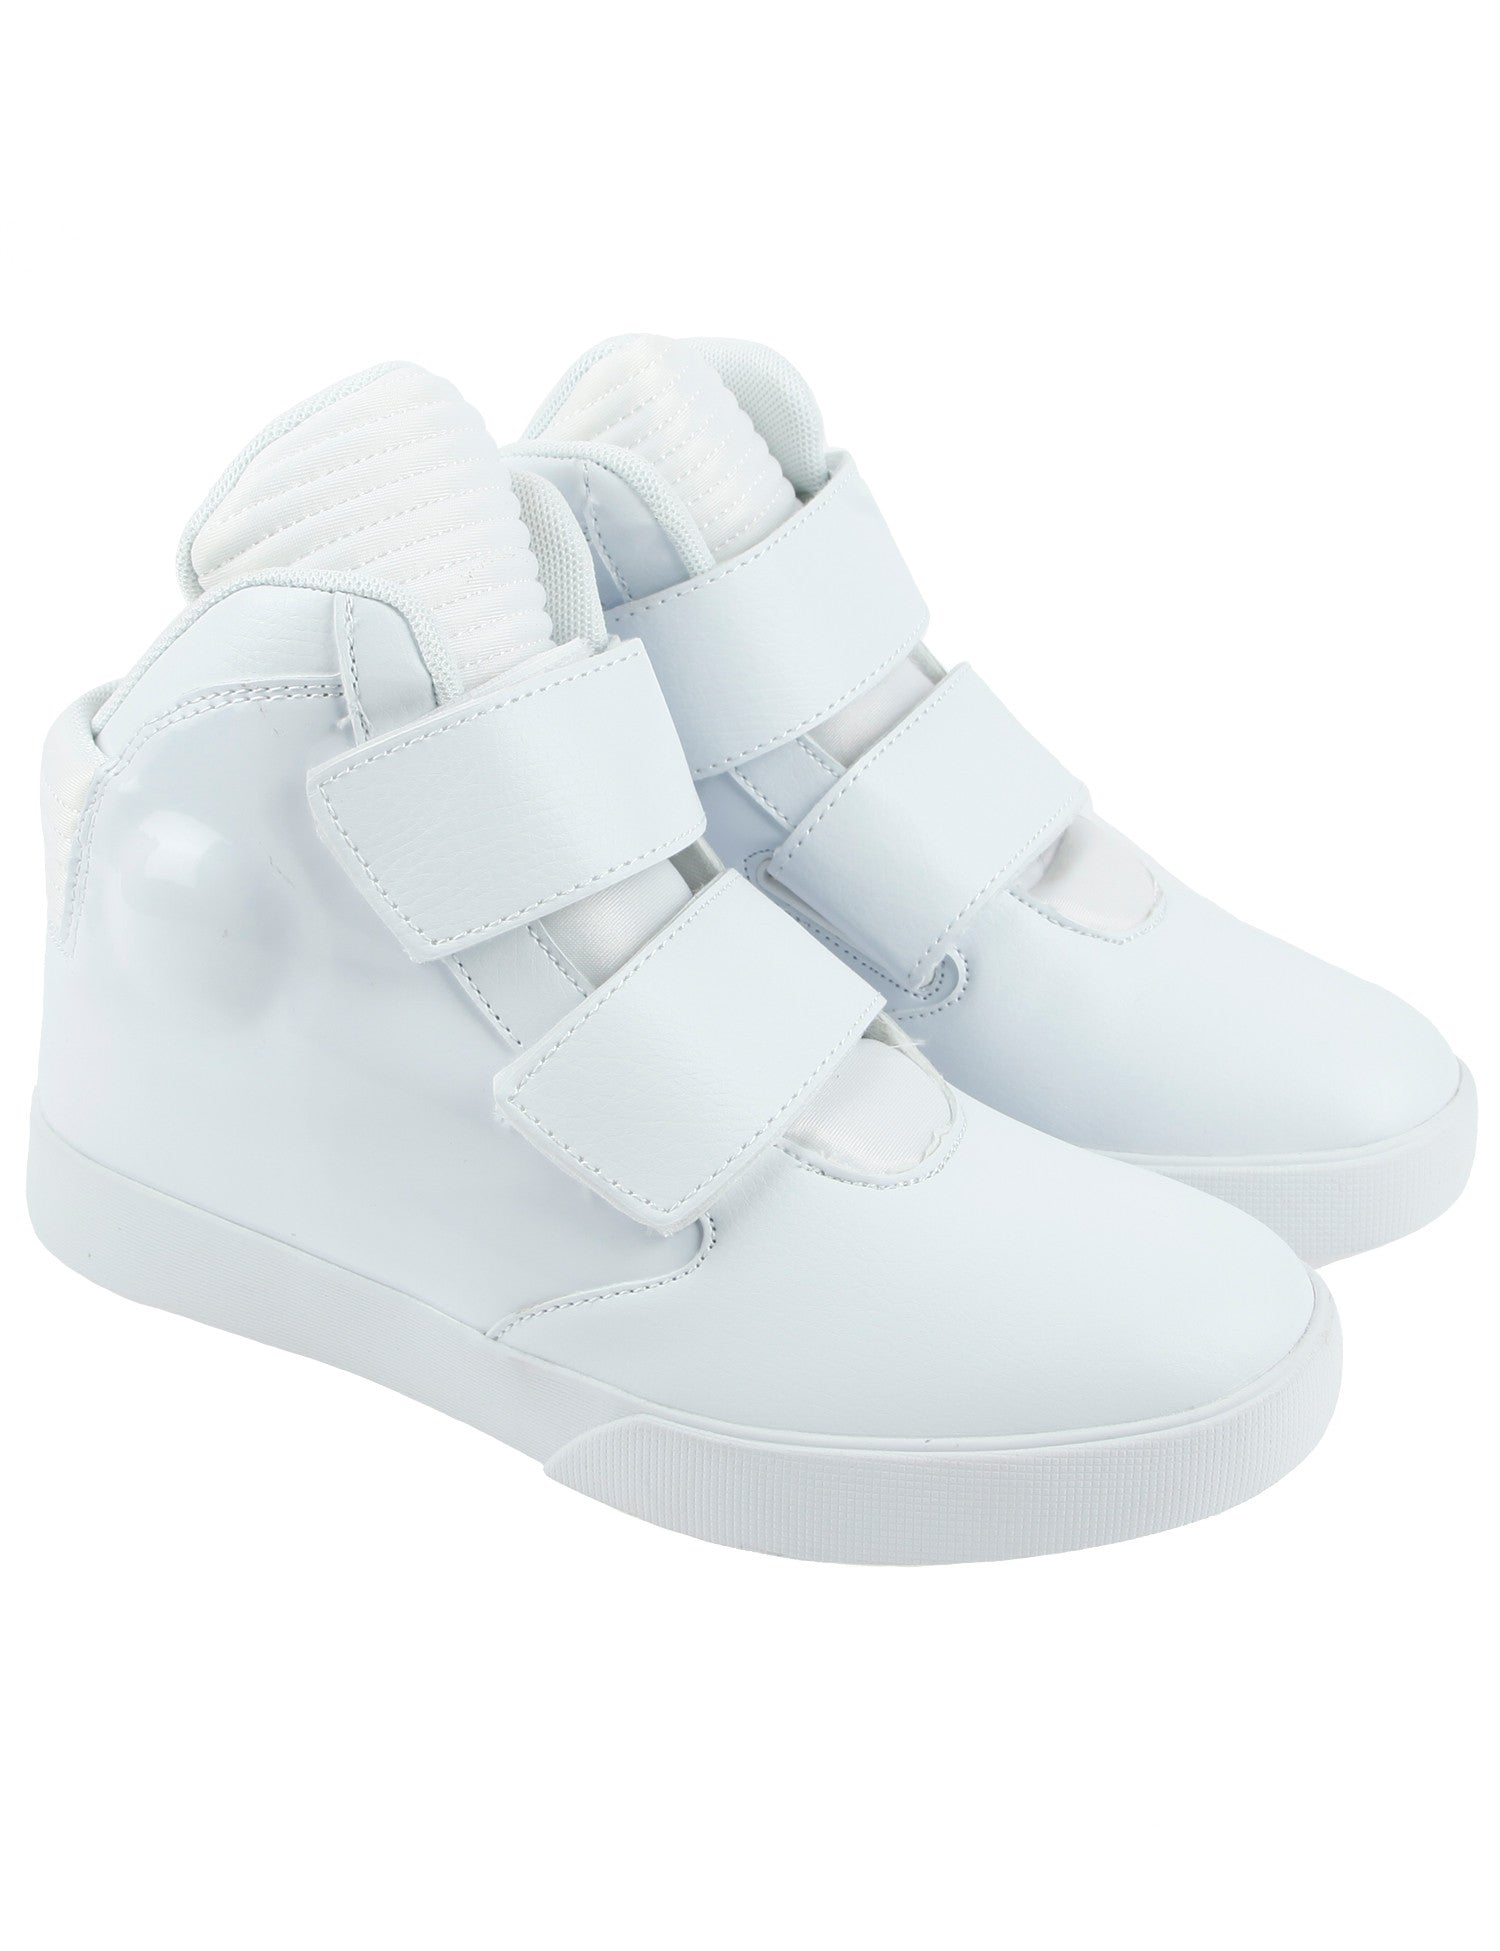 Cultz 150821 Shoes  White